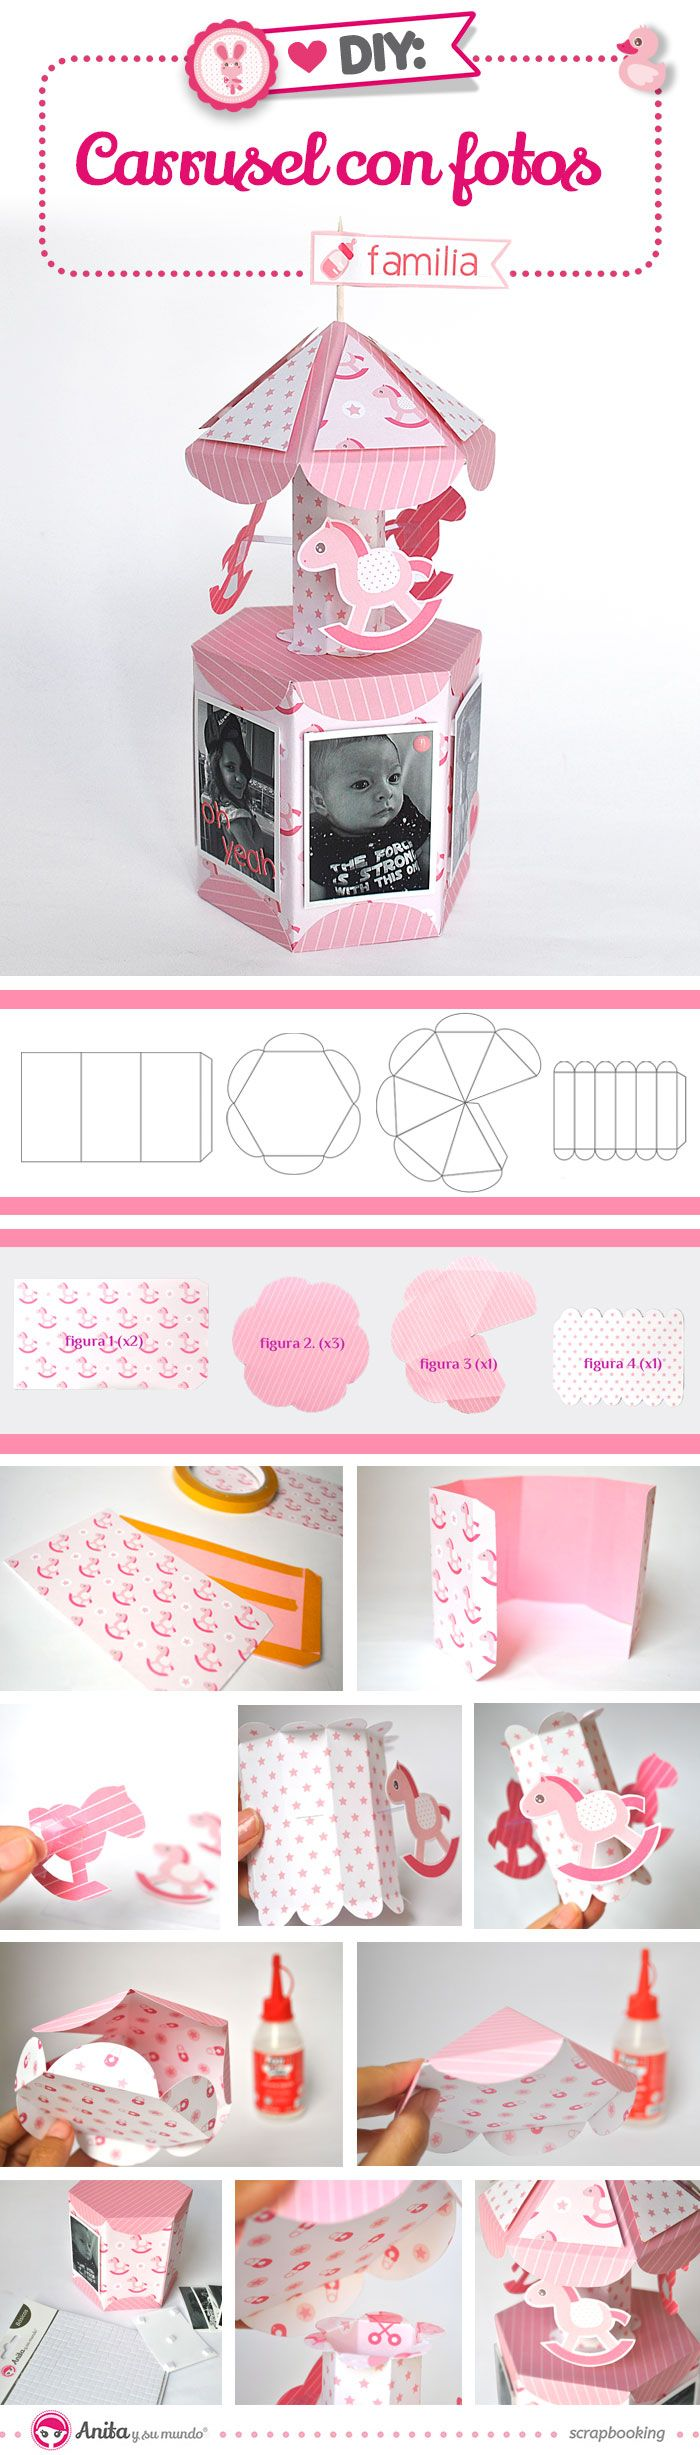 Mini album for baby carousel format